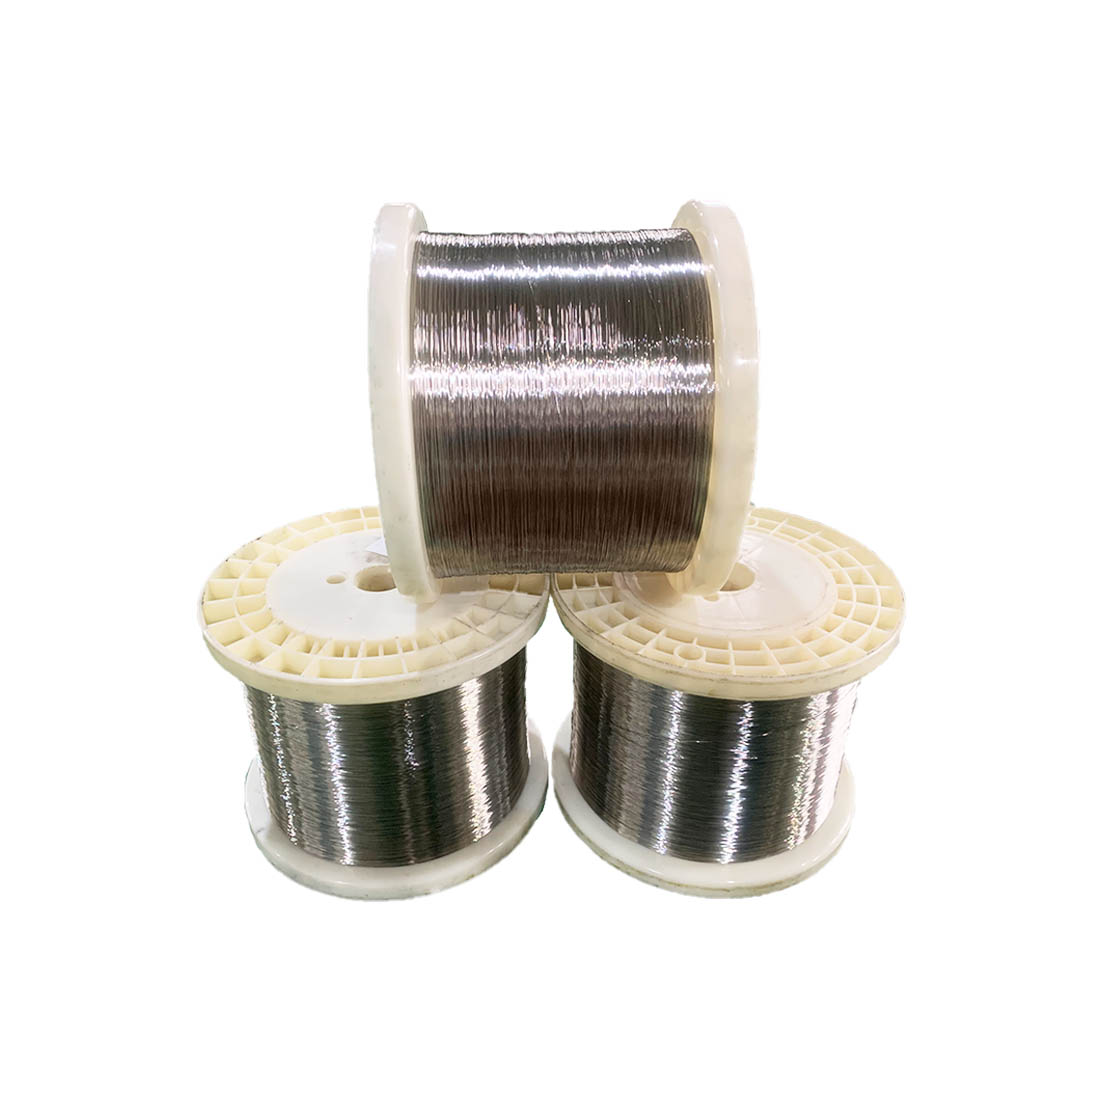 Factory source 16 Awg Nickel Plated Copper Wire -